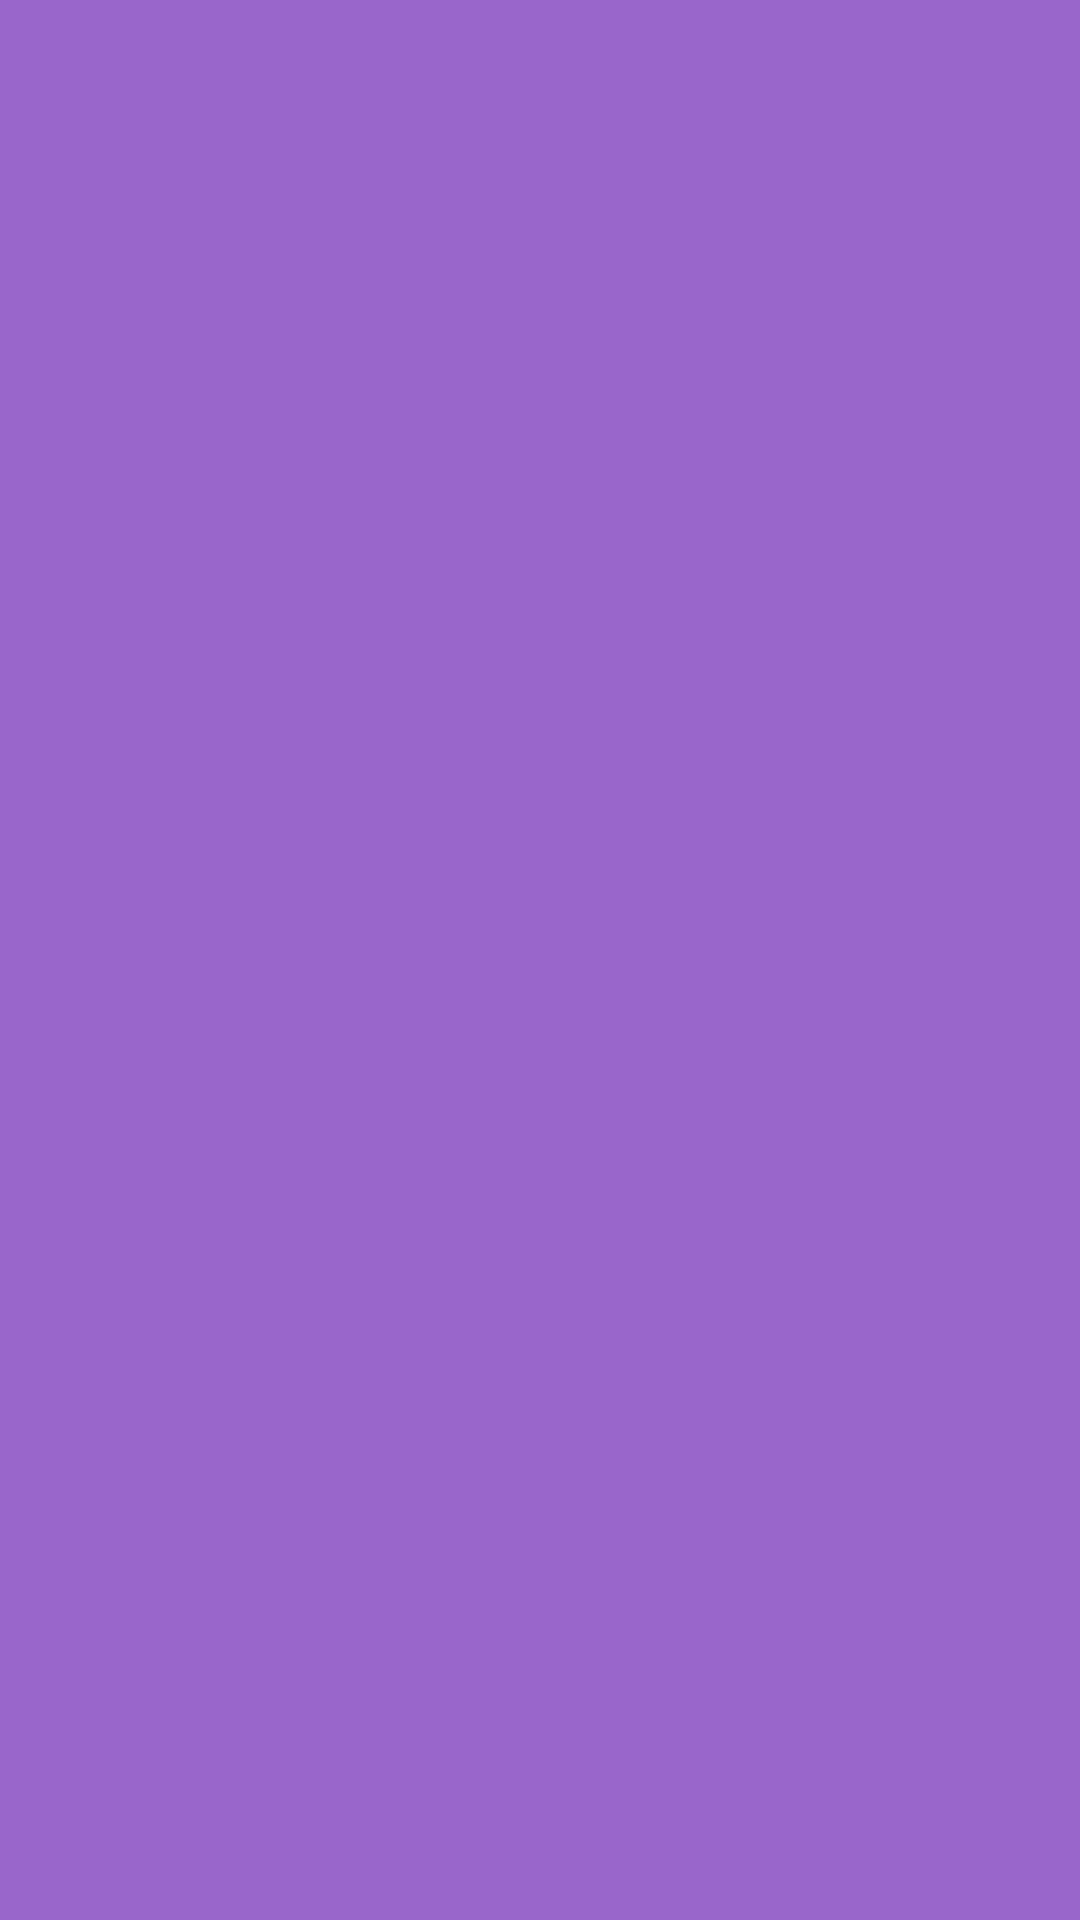 1080x1920 Amethyst Solid Color Background